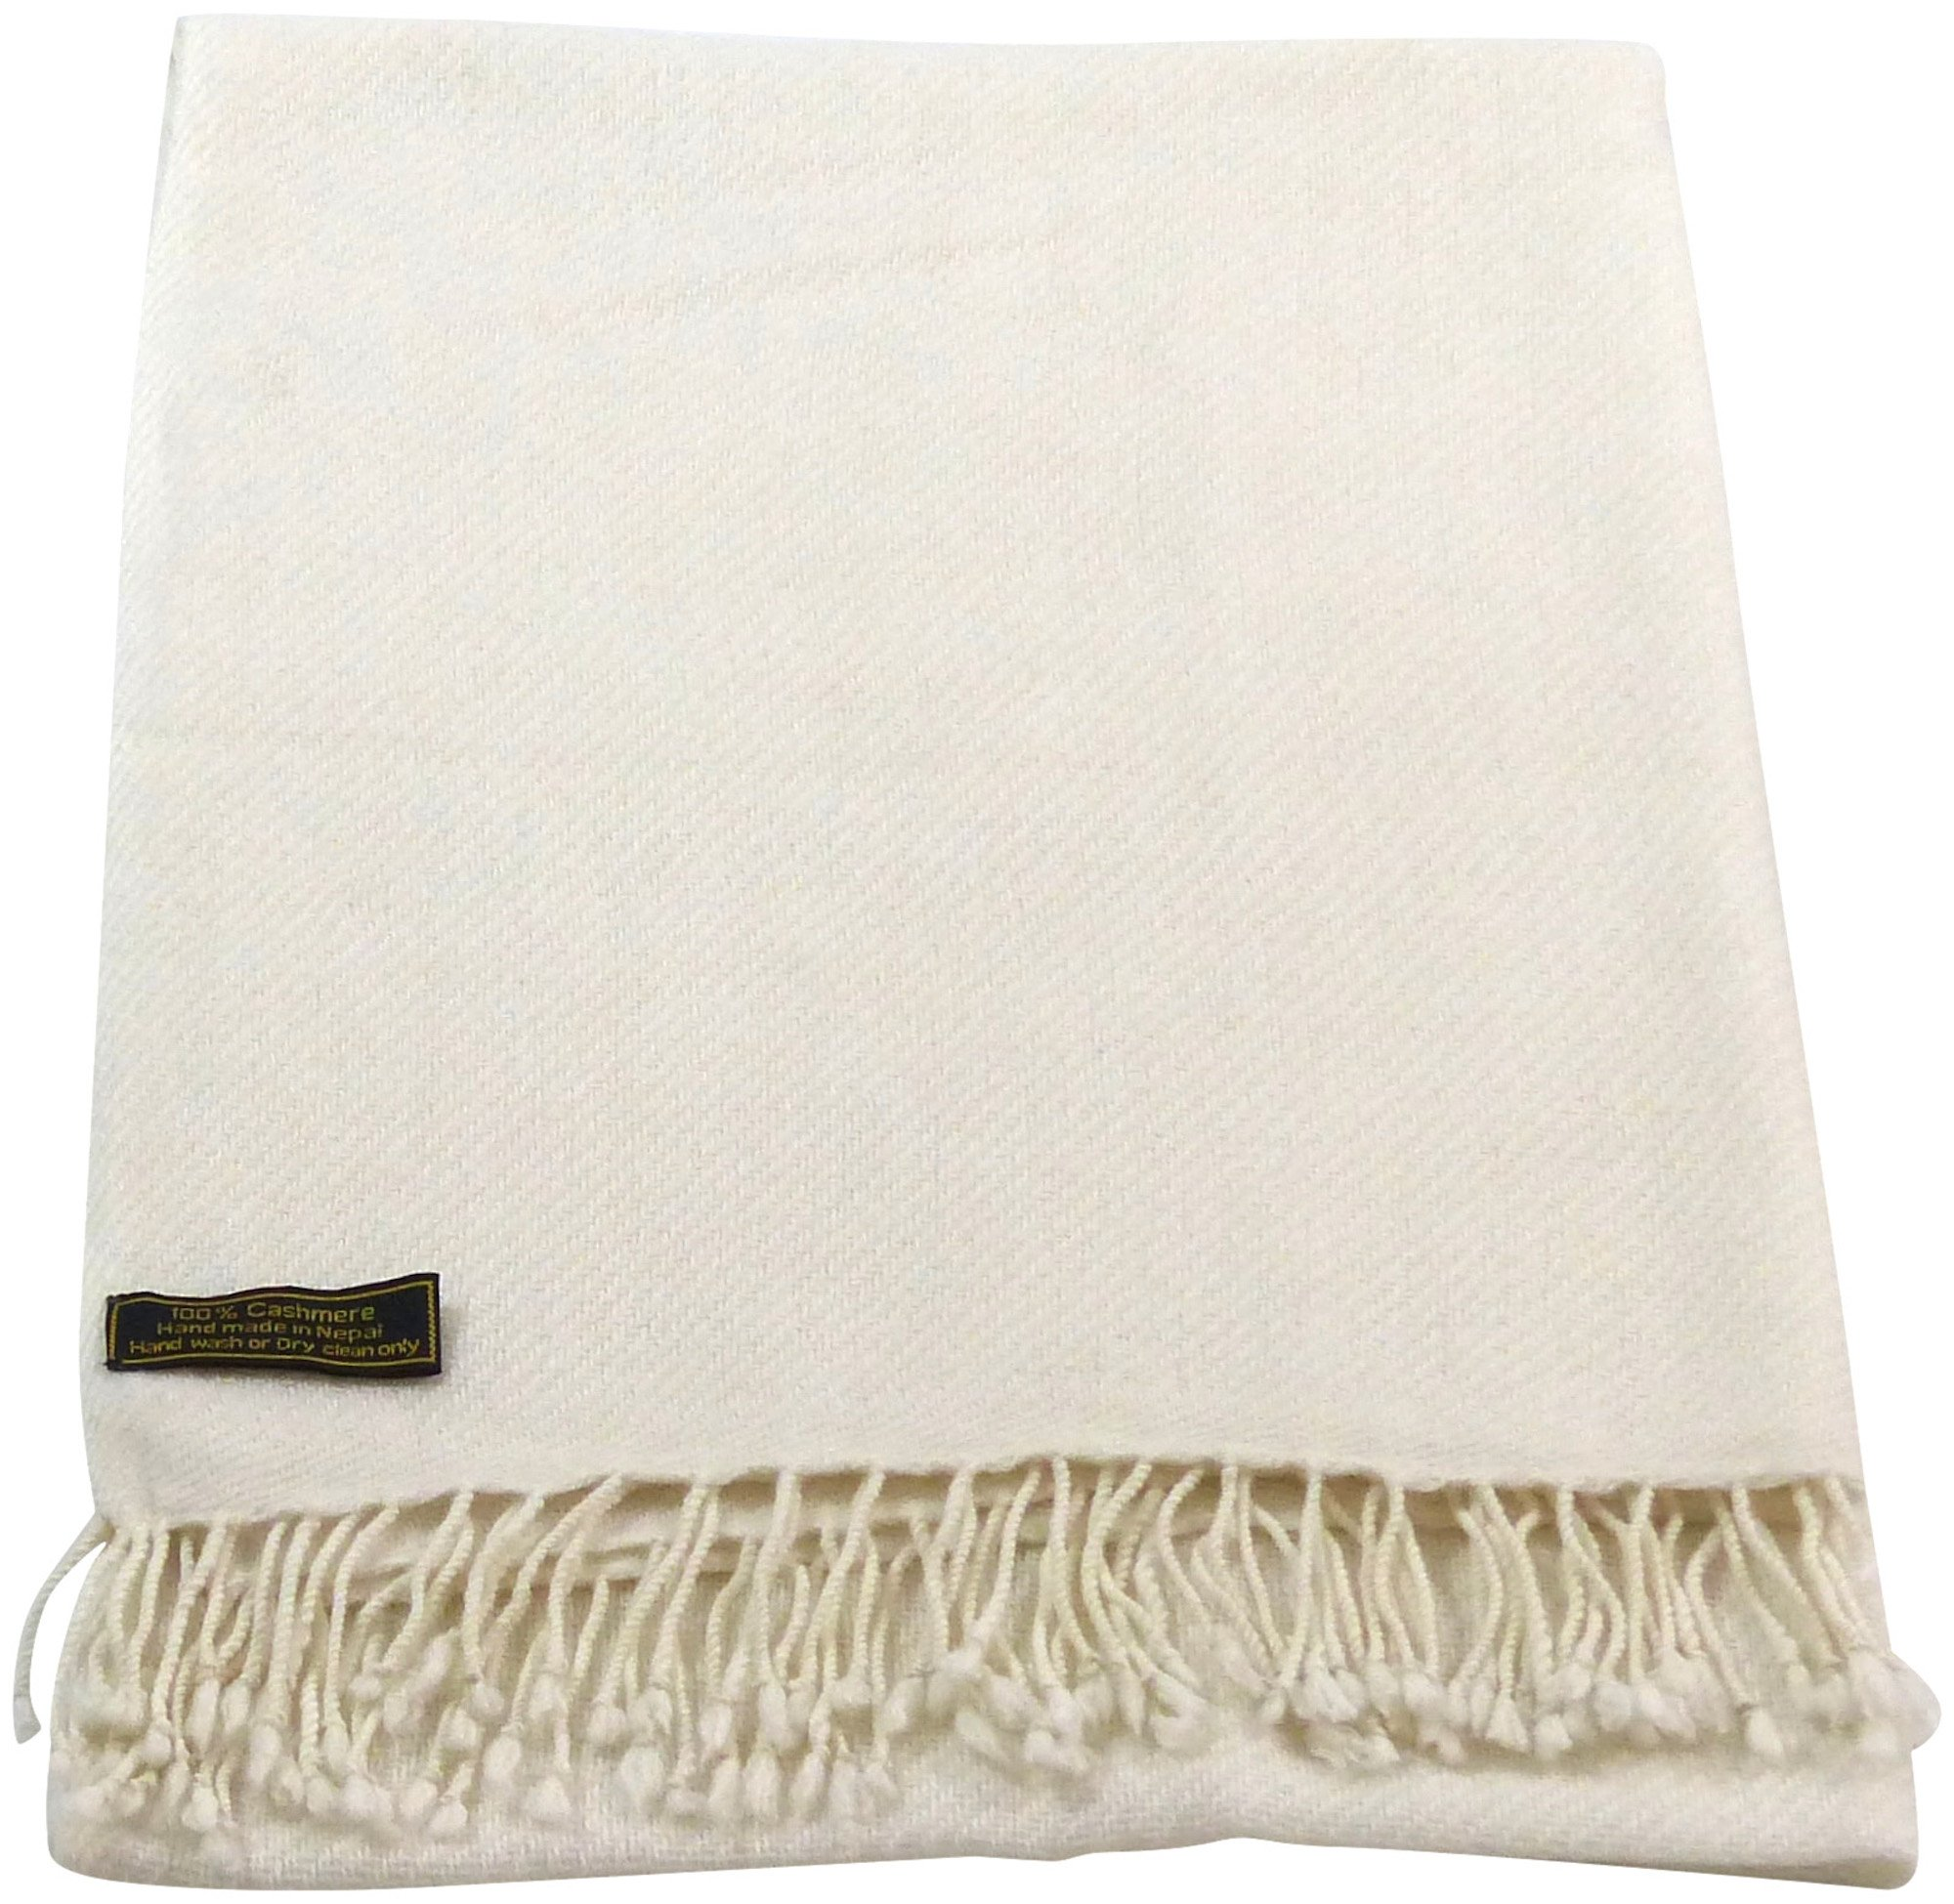 White High Grade 100% Cashmere Shawl Scarf Wrap Hand Made in Nepal NEW